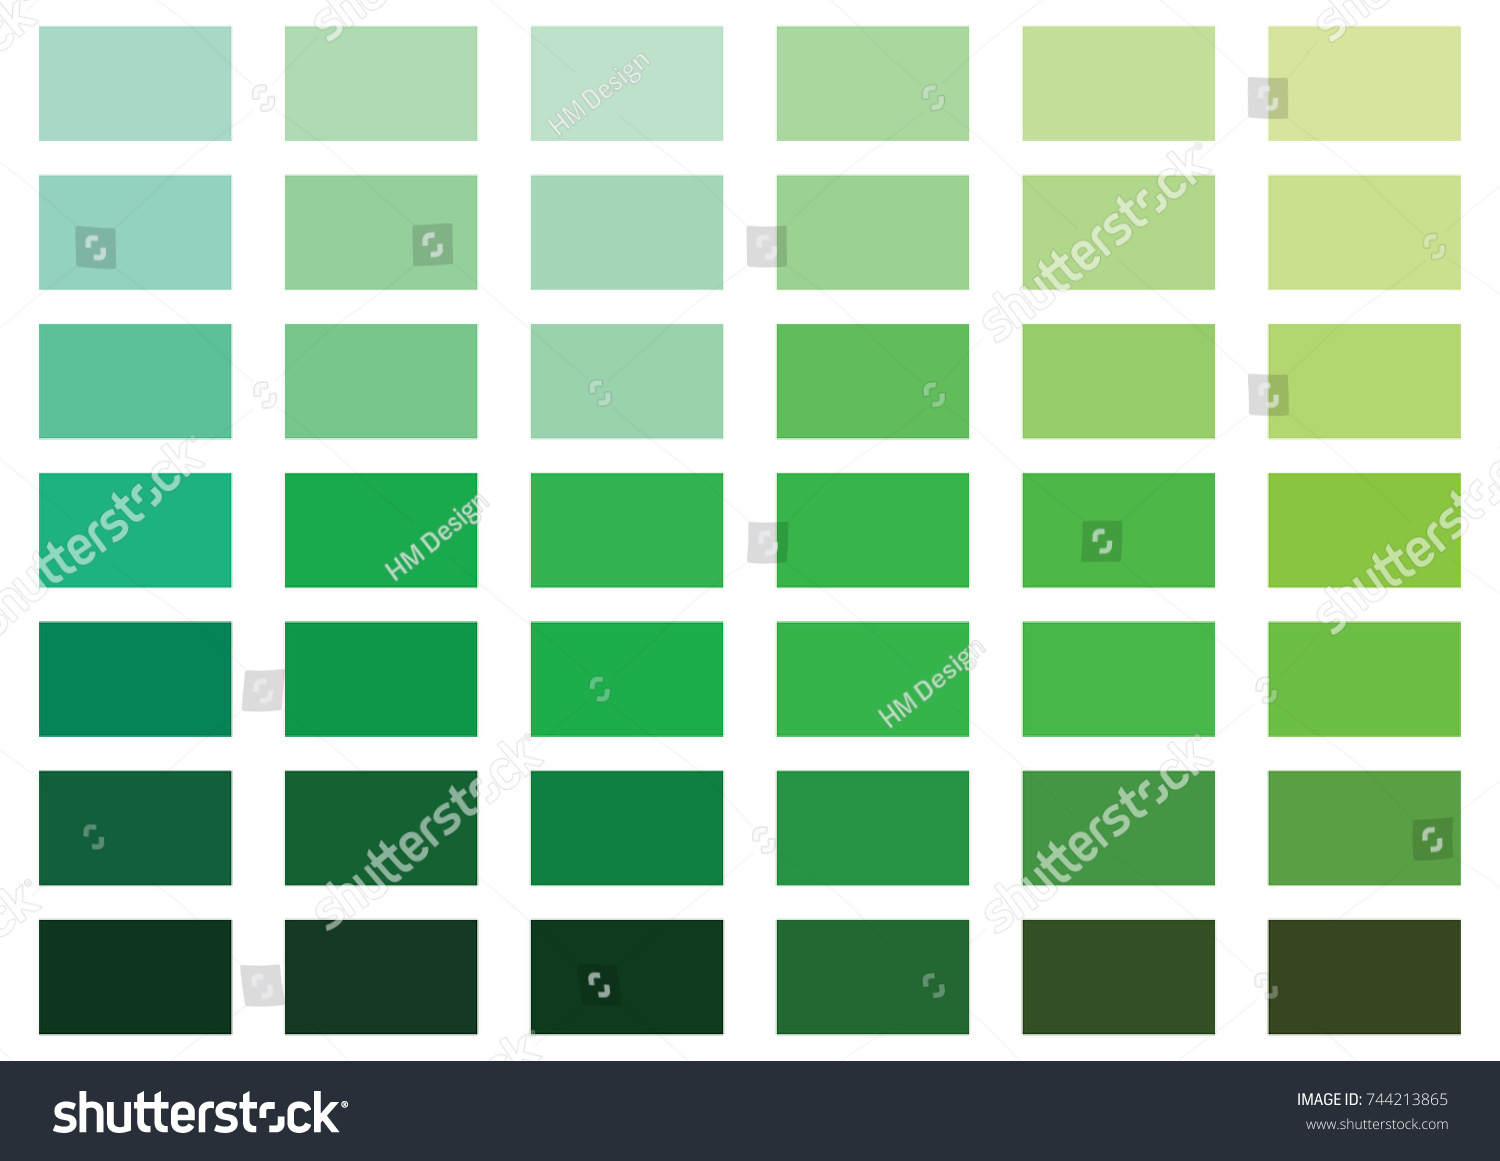 Green Color Palette Vector Illustration Stock Vector (Royalty Free ...